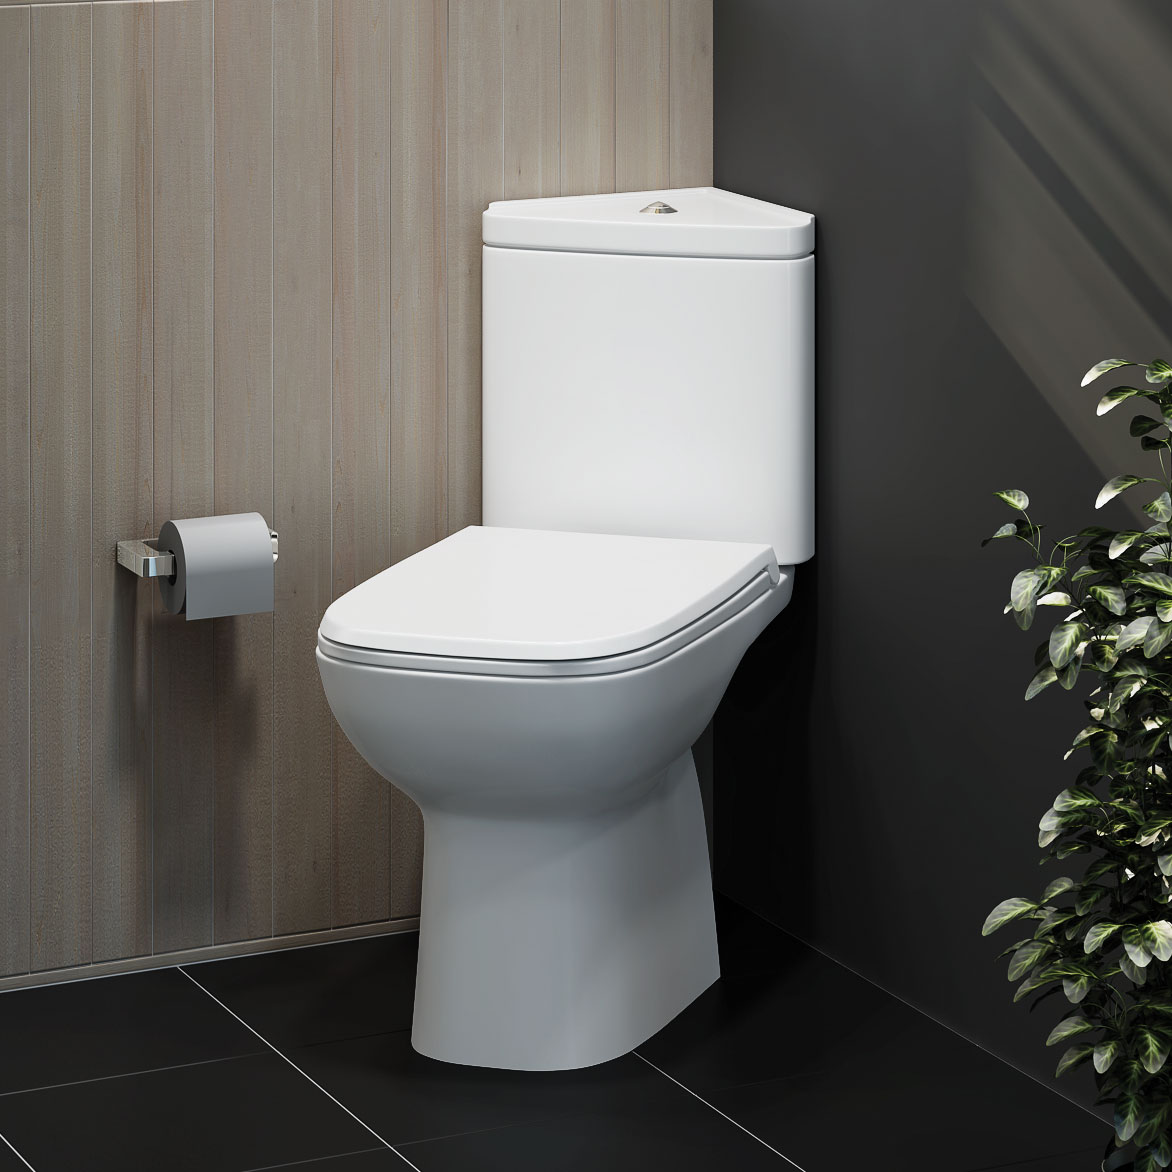 Rak origin corner toilet space saving soft close seat cloakroom close coupled tewp - What is the meaning of commode ...